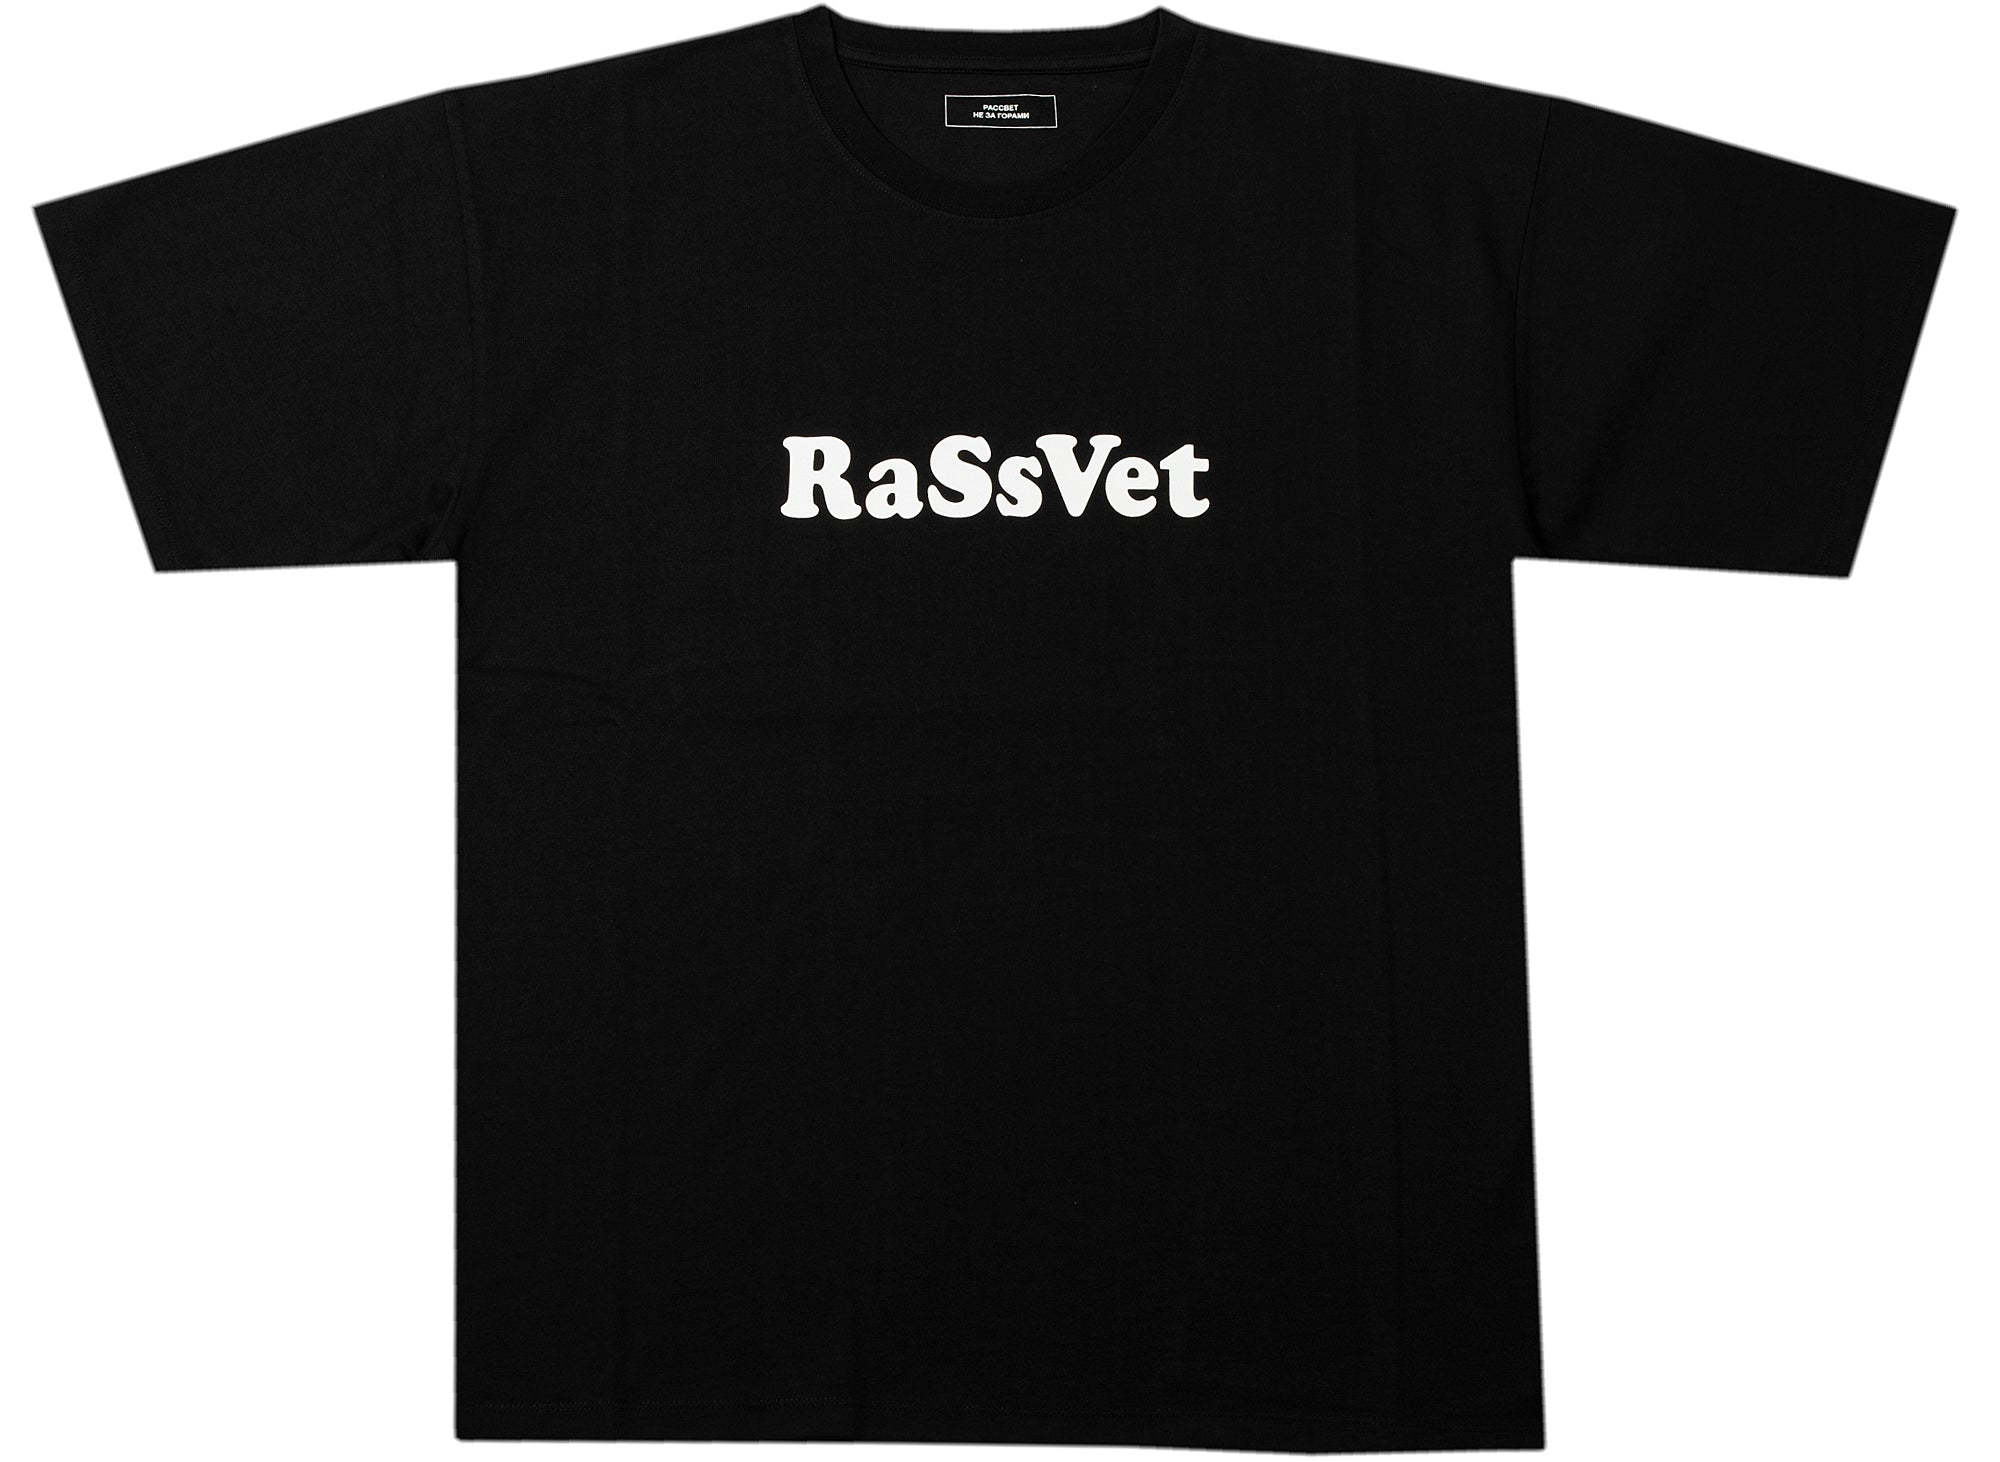 Rassvet (PACCBET) Men's T-Shirt in Black